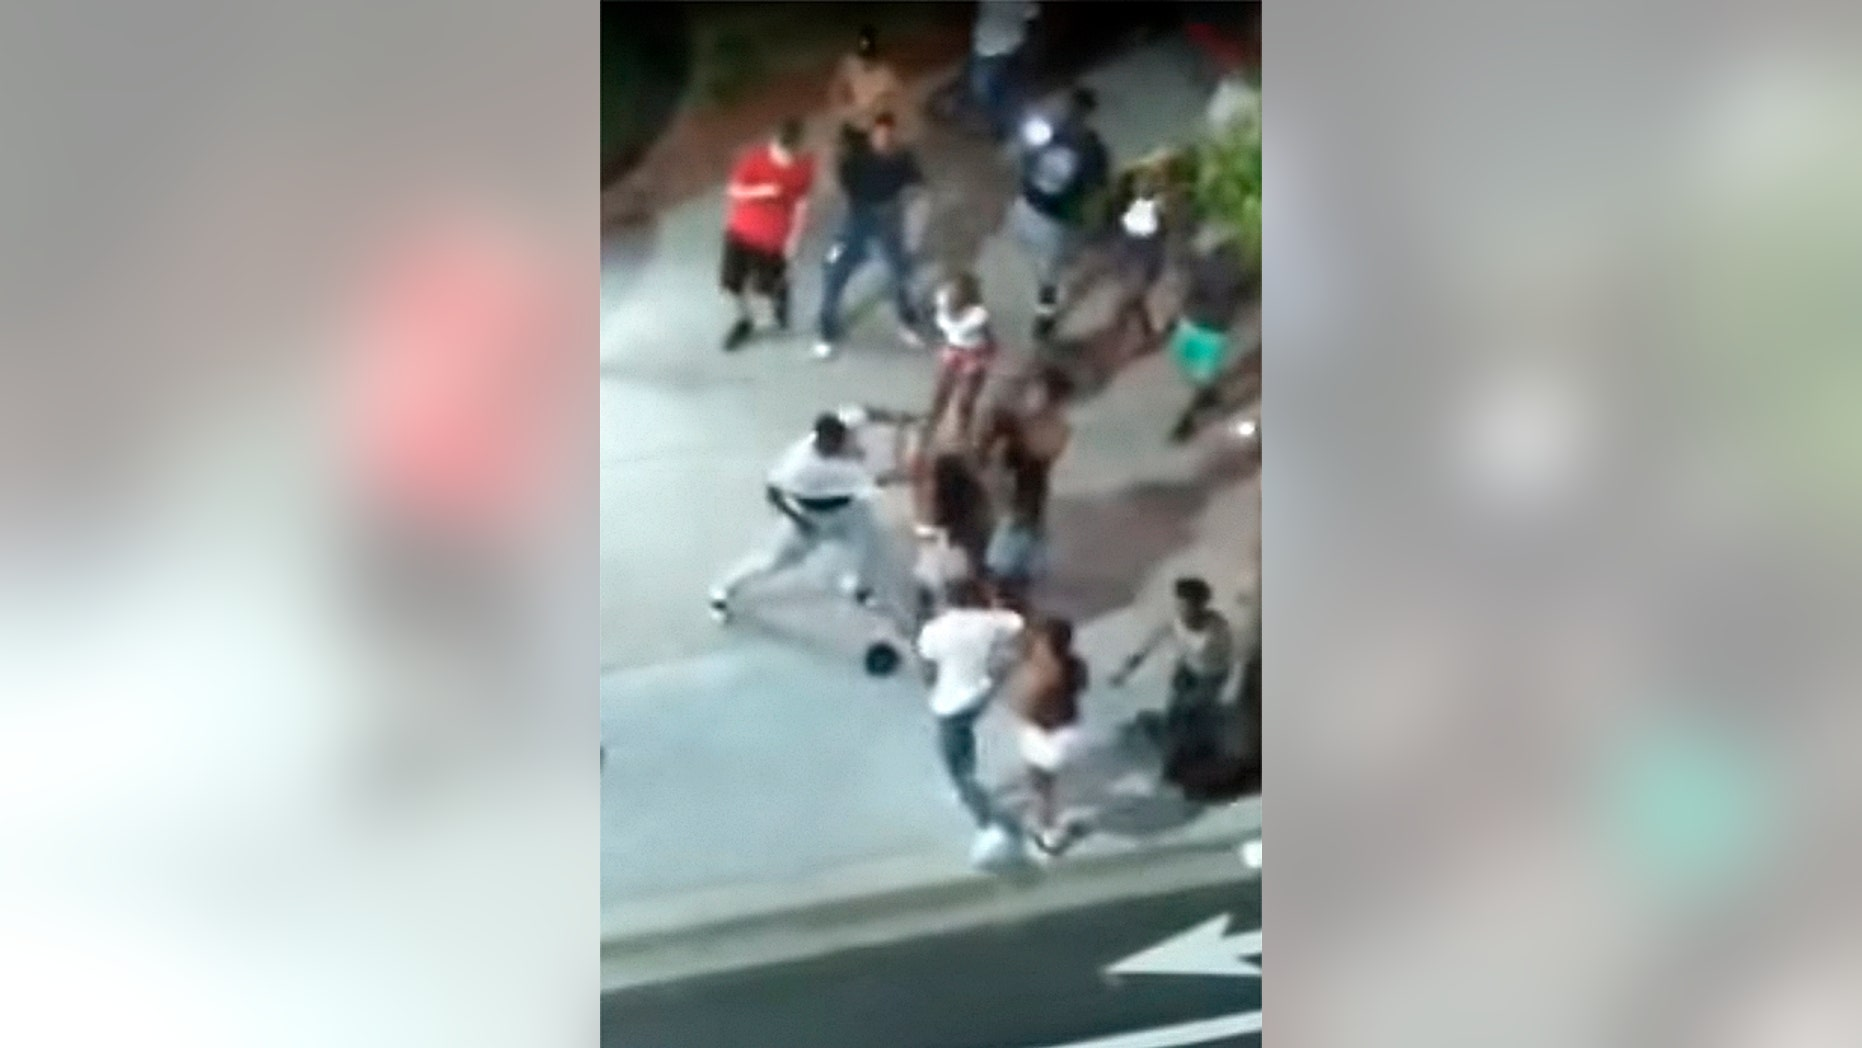 Screen shot from Facebook Live video that captured a shooting early Sunday in Myrtle Beach, S.C., shows man in white t-shirt reaching for a gun.